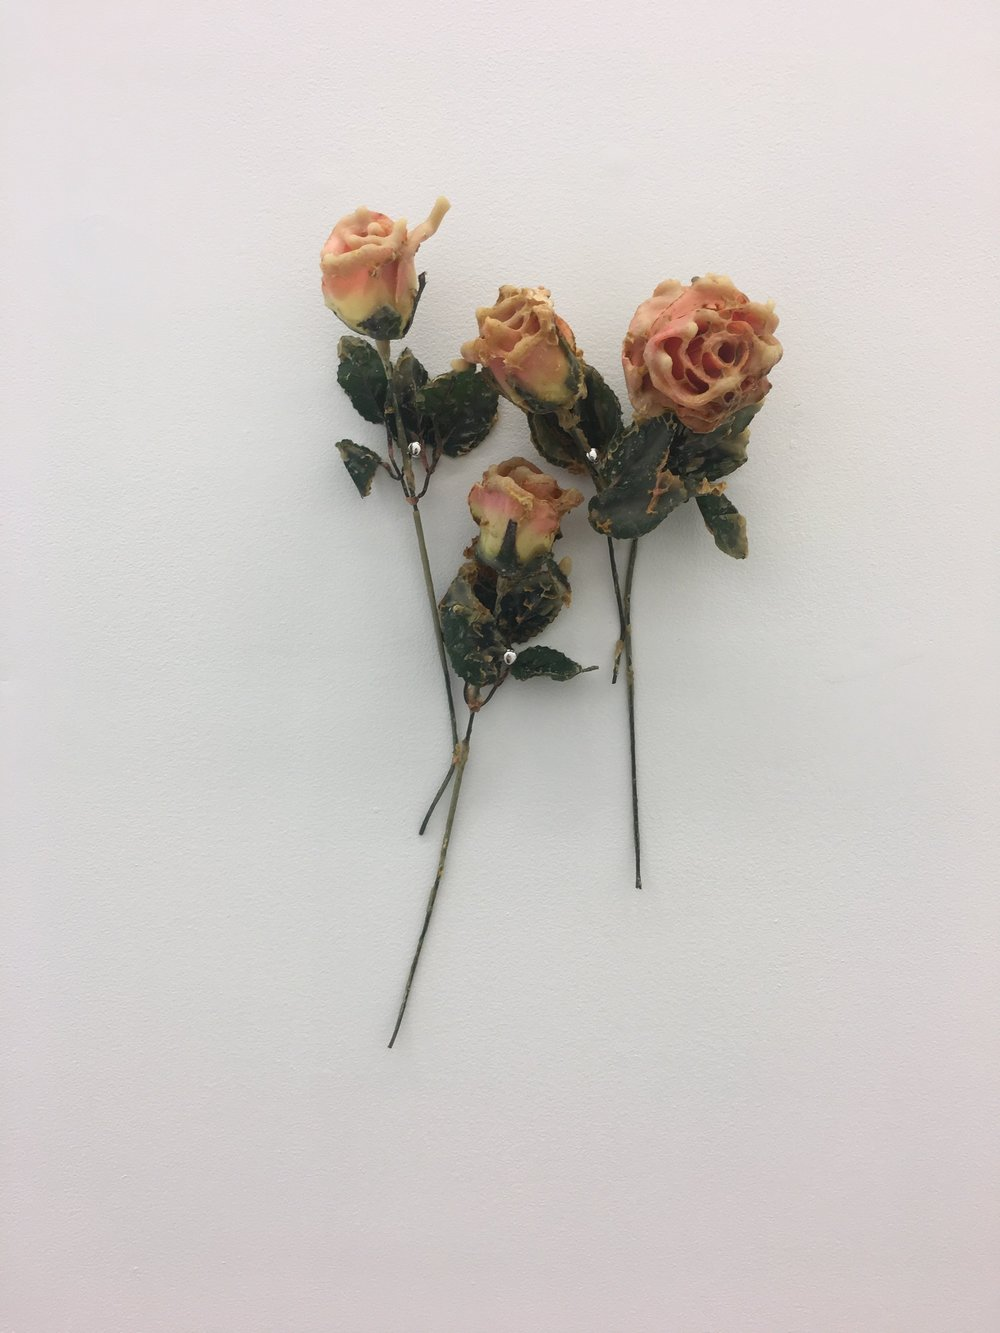 Aganetha Dyck, Three Flowers, 2018. Silk flowers, beeswax, honeycomb.